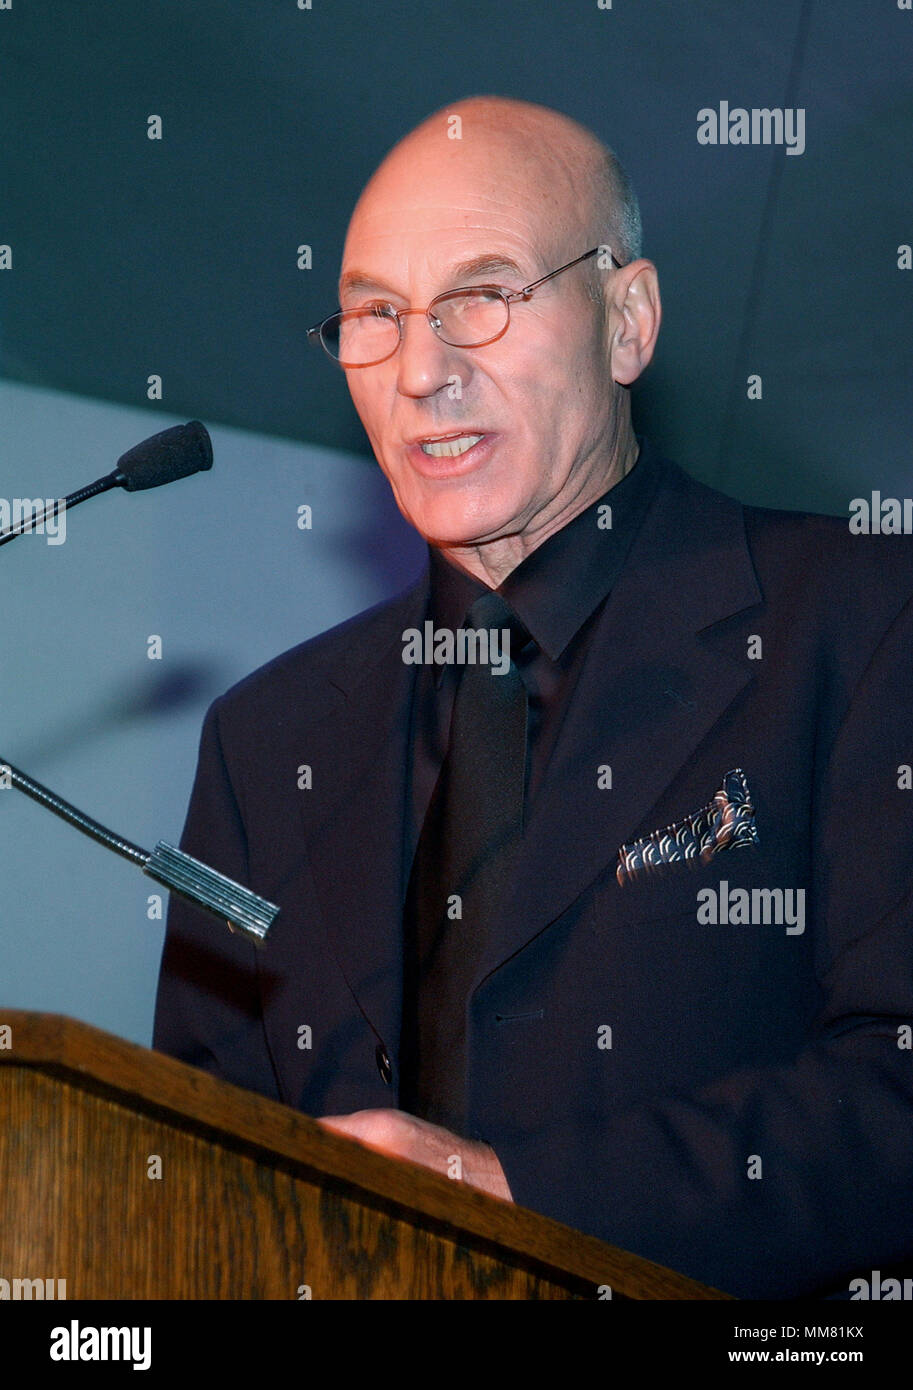 Patrick Clarke High Resolution Stock Photography And Images Alamy